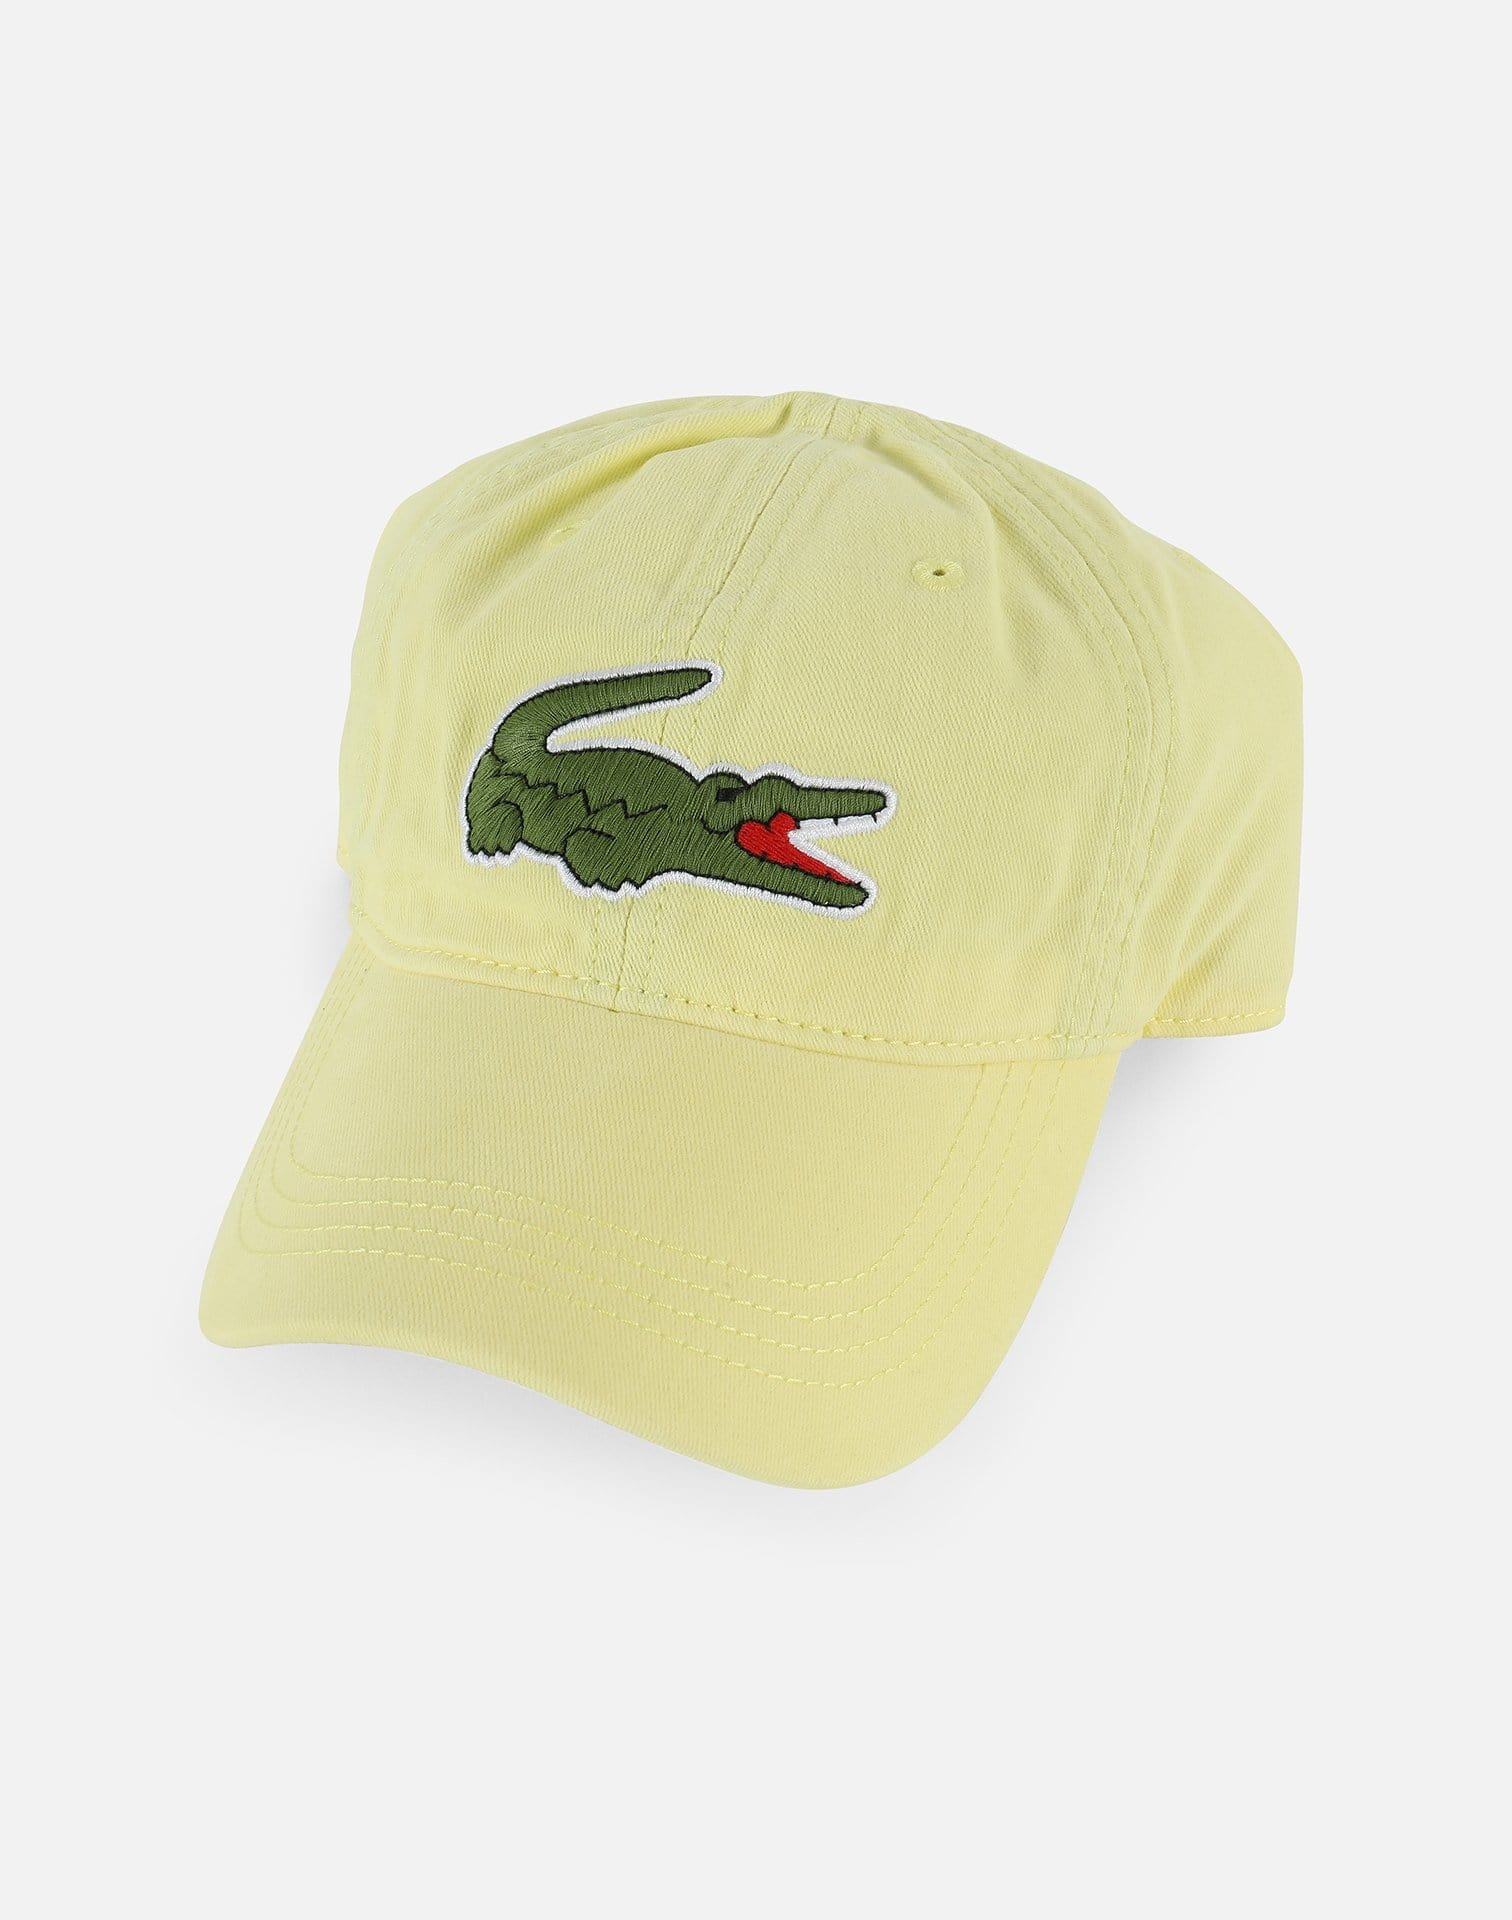 BIG CROC GABARDINE DAD CAP